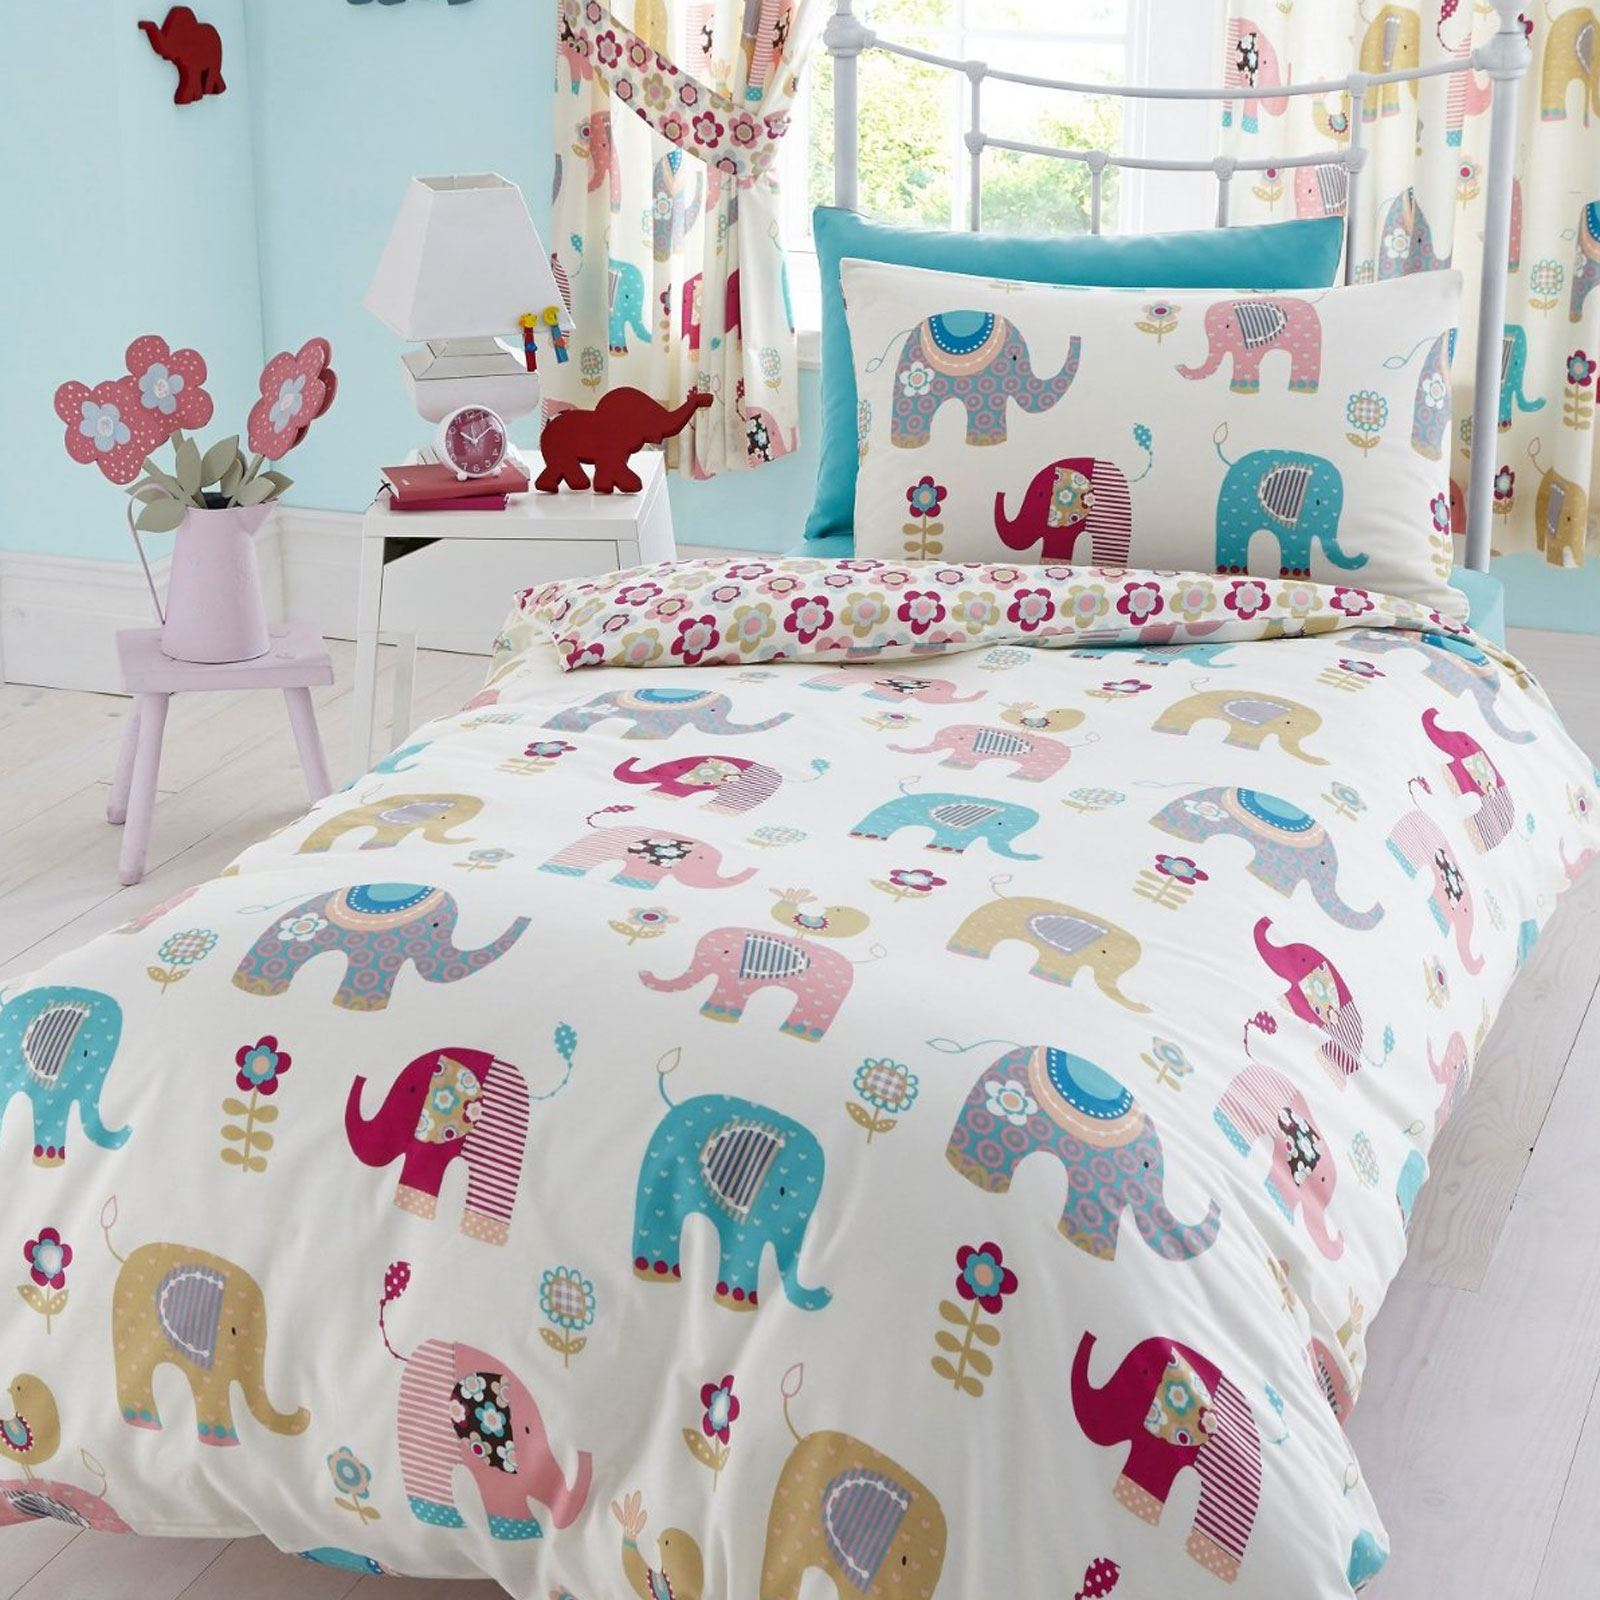 Horse Bedding for Girls | Horse Comforter Sets Queen | Target Circo Bedding